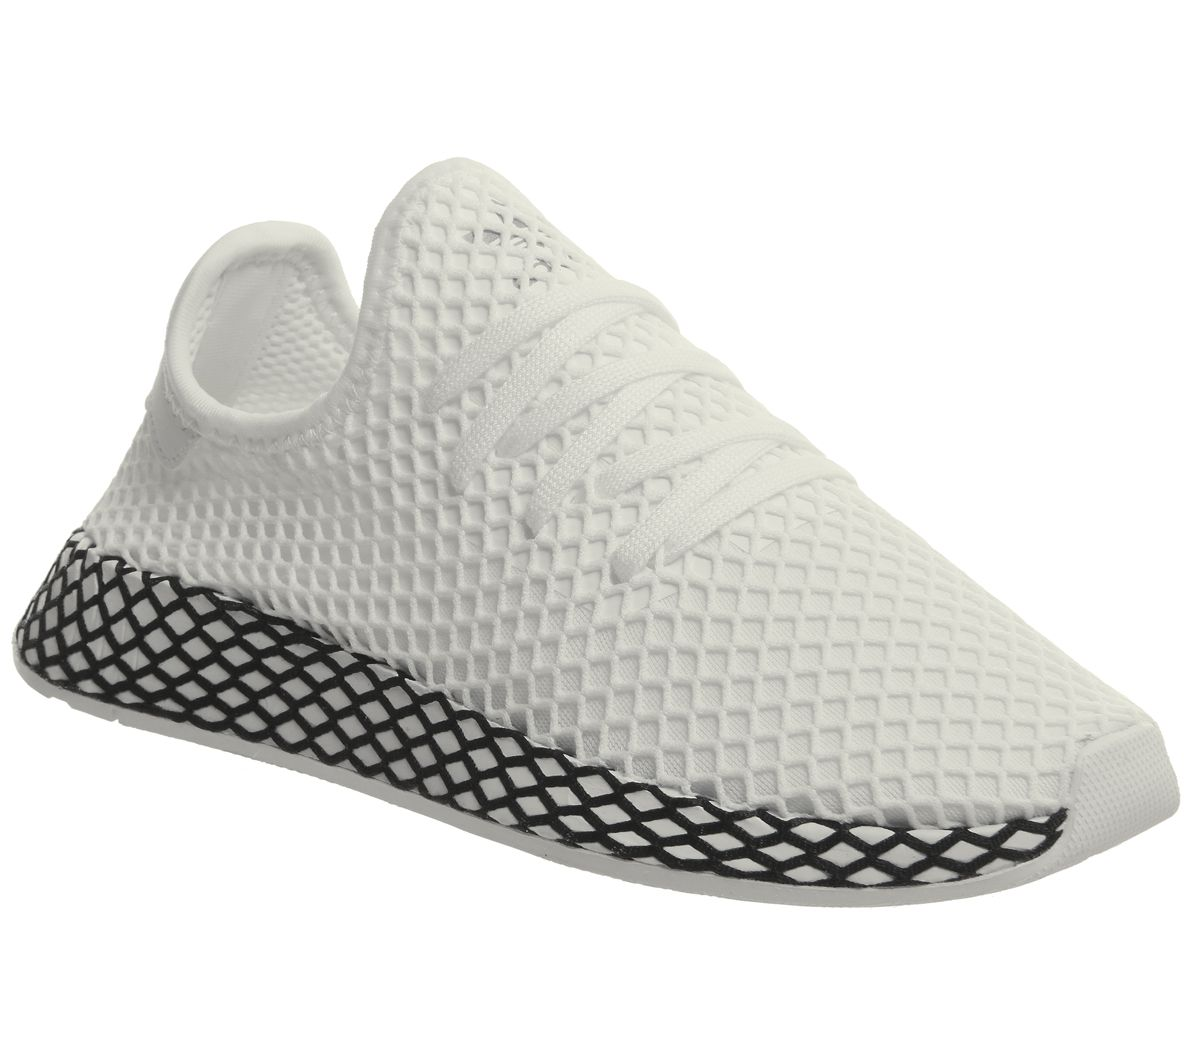 6c51dde5c adidas Deerupt Trainers White White Core Black - Unisex Sports